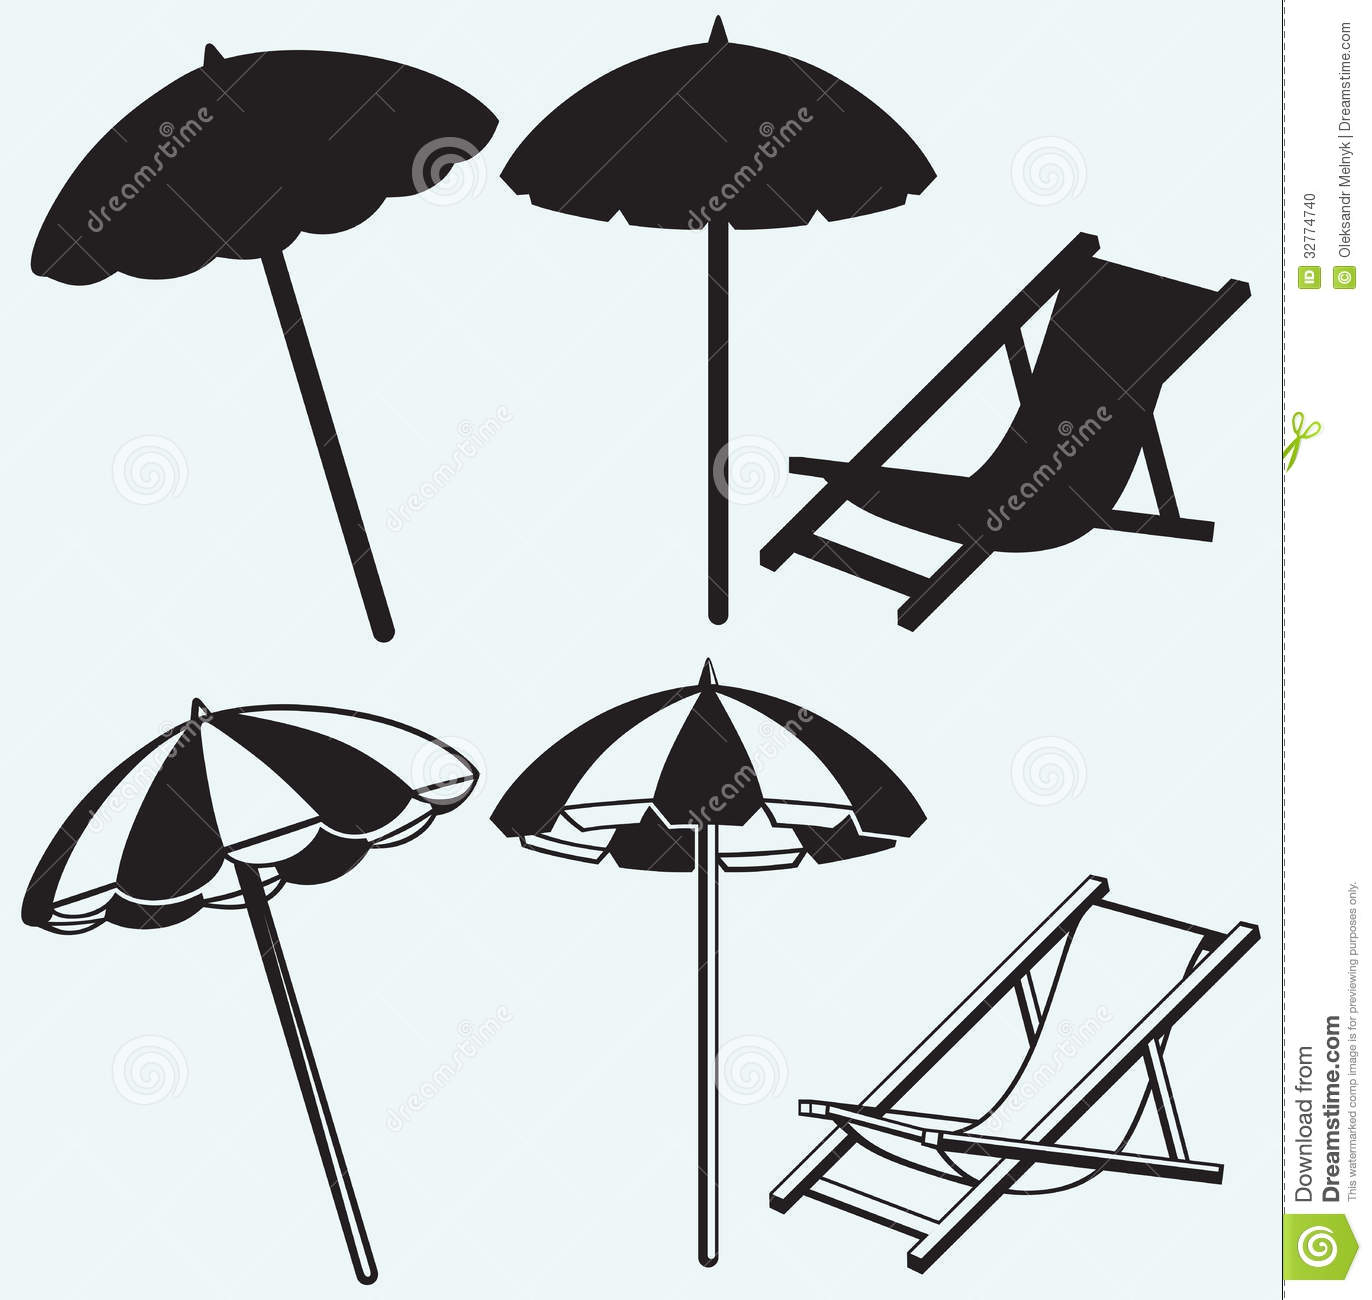 Beach chair and parasol vector illustration stock vector image - Chair And Beach Umbrella Stock Photo Image 32774740